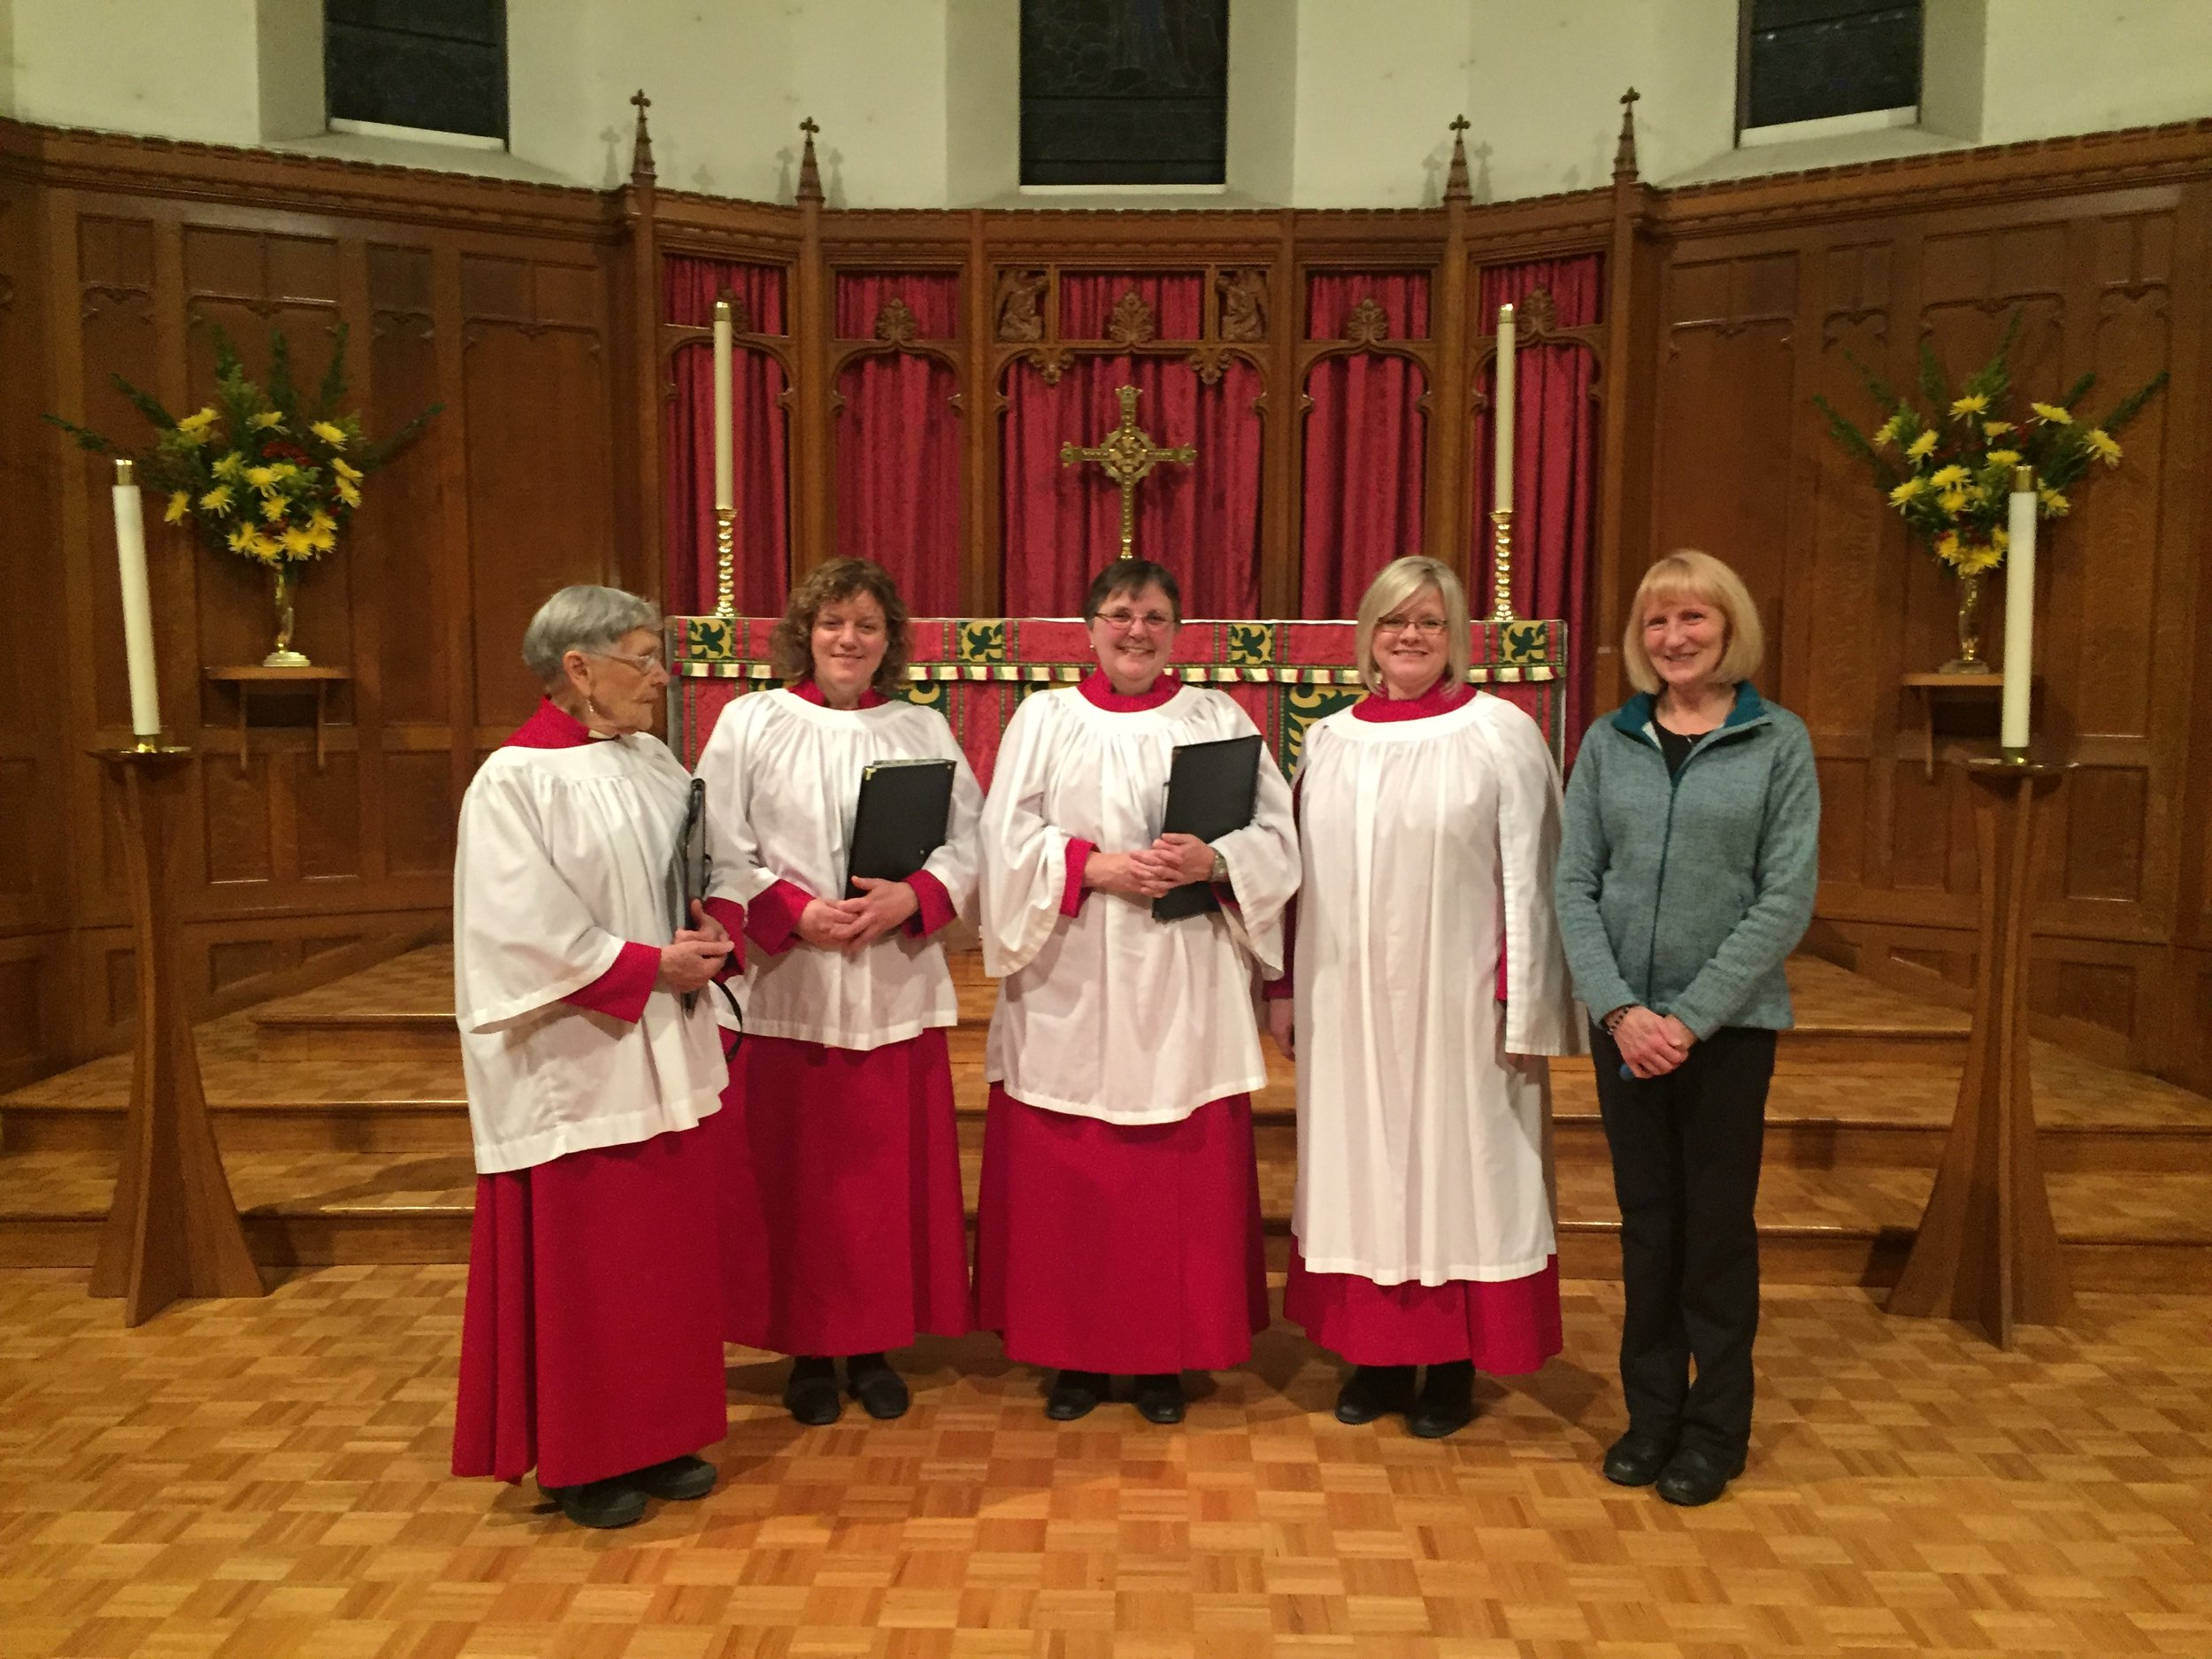 Some of our visitors from St. Augustine's, Lethbridge. Three choir members, with Joan Collier, Director of Music (in long surplice) and organist Mary Lee Voort (without robes).